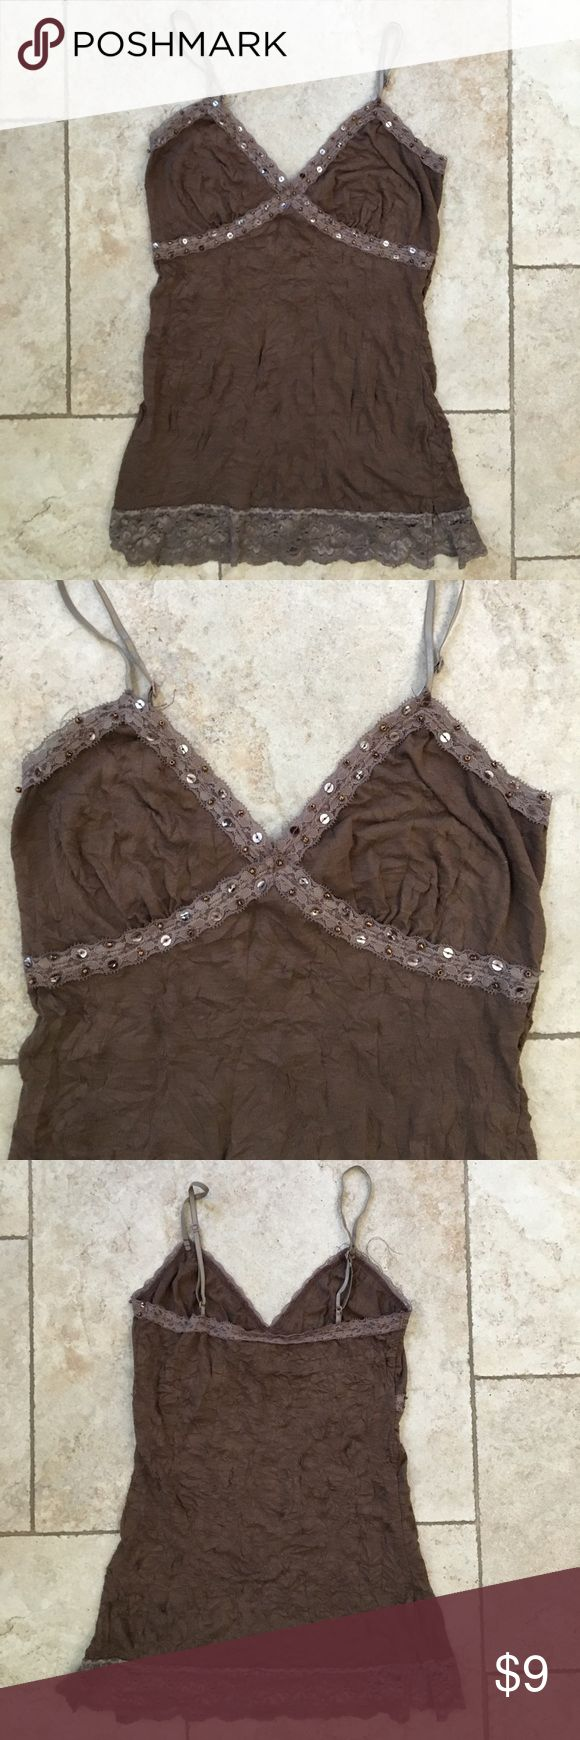 Brown Cami with Lace and Sequin Detail Size SMALL Super cute crinkle designed camisole with lace, sequins and beads. Tops Camisoles